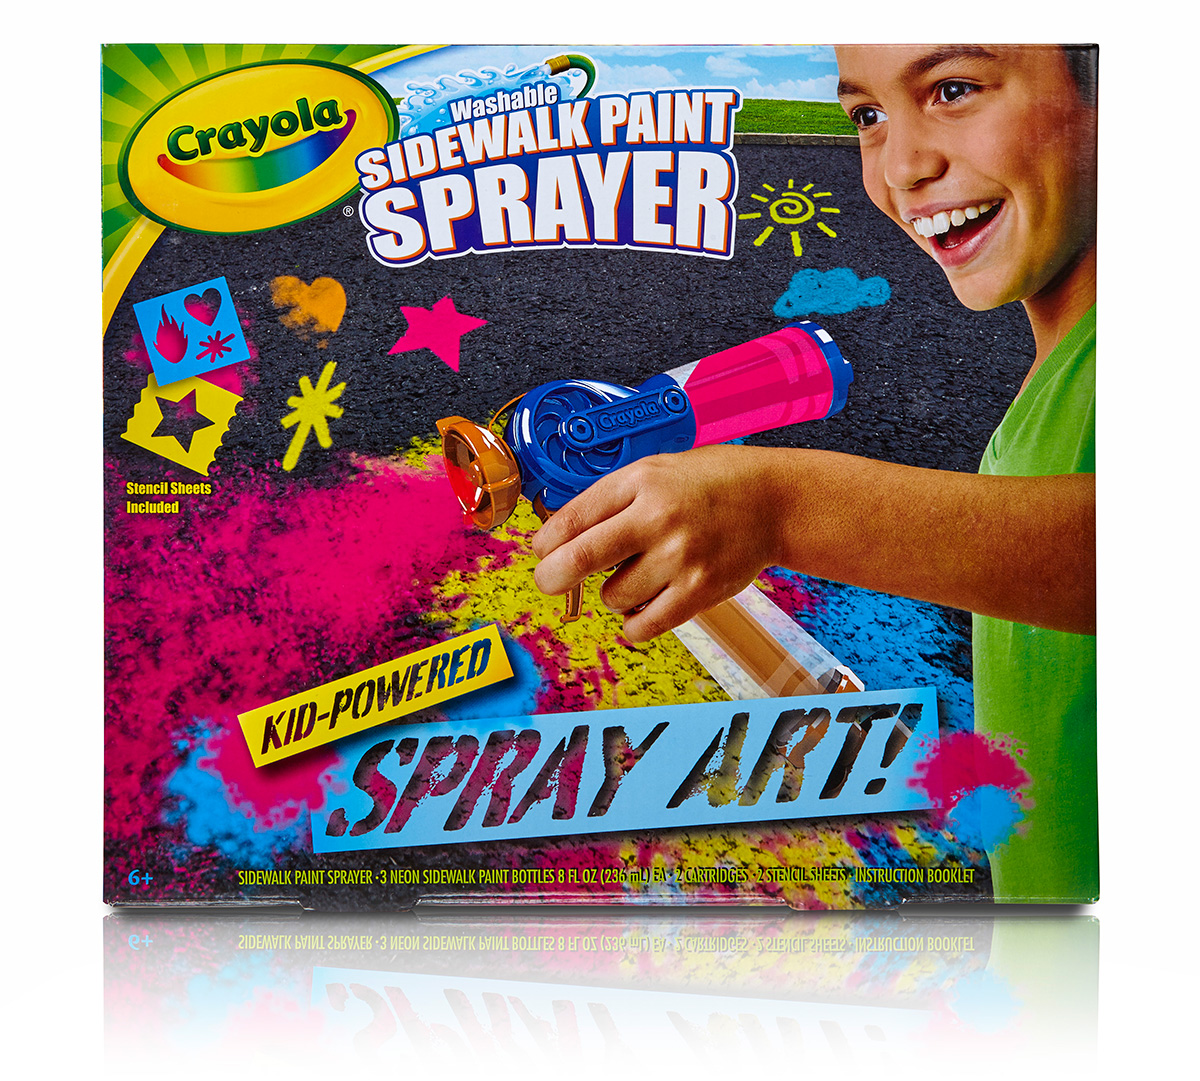 Crayola Washable Sidewalk Paint Sprayer Outdoor All